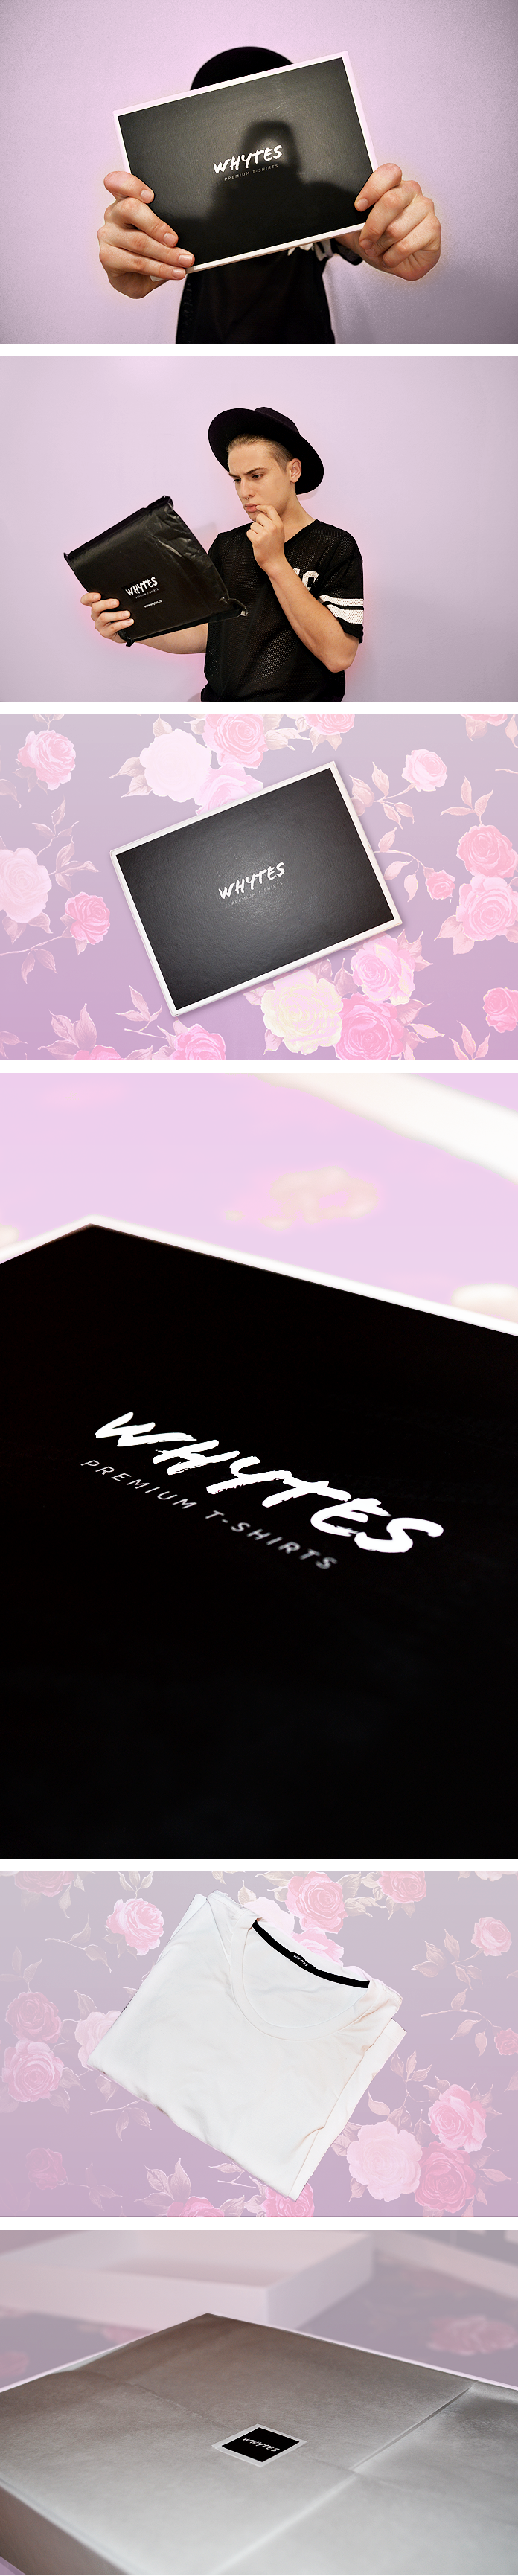 Photo Credit:  Donovan Pavleković